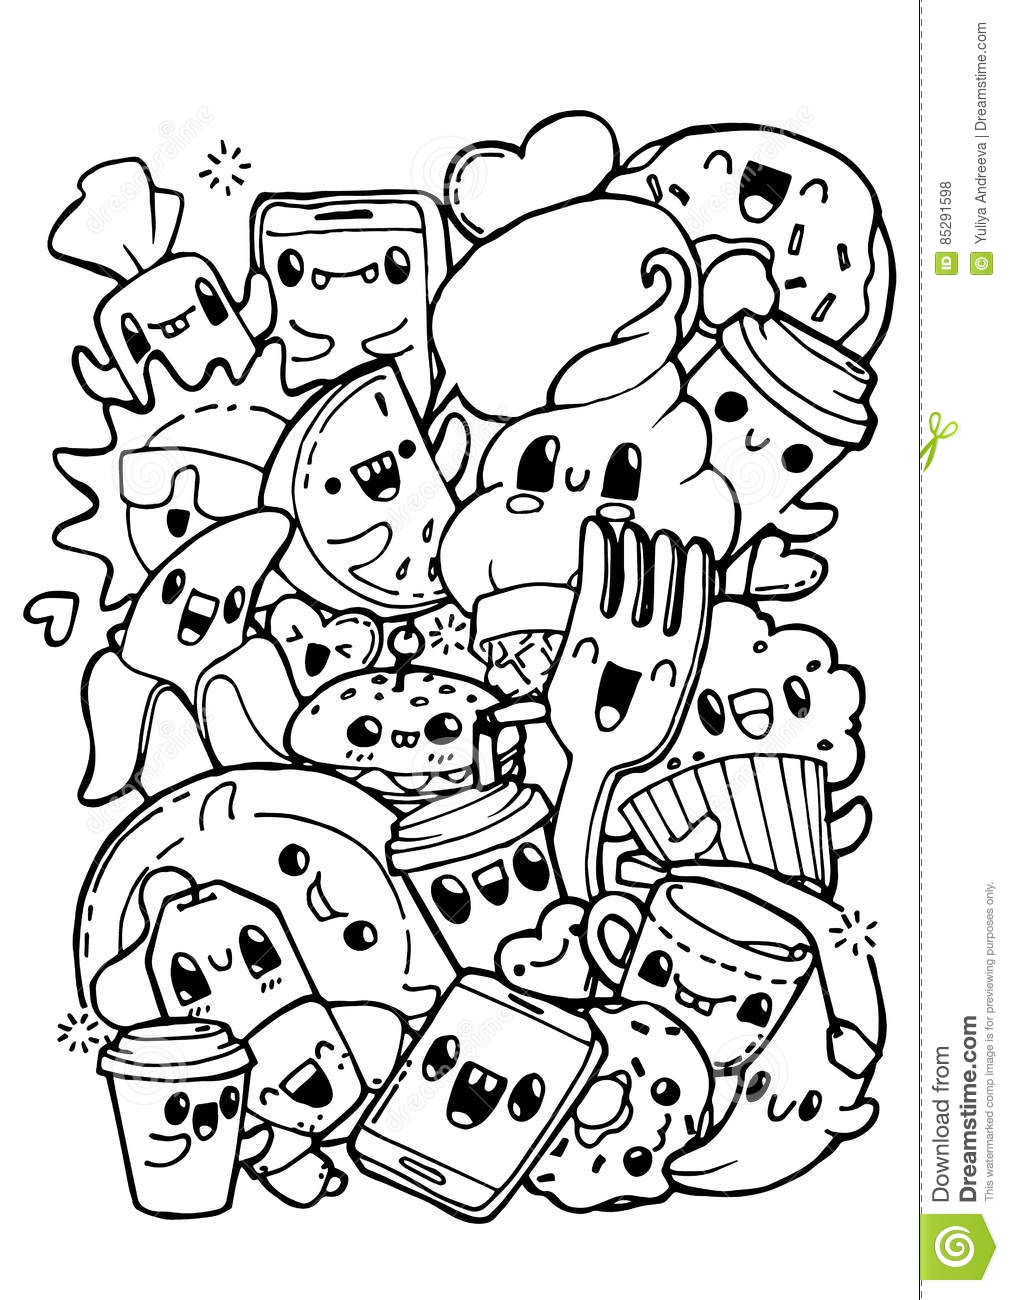 Dining Doodles. Coloring Pages For Kids. Stock Vector